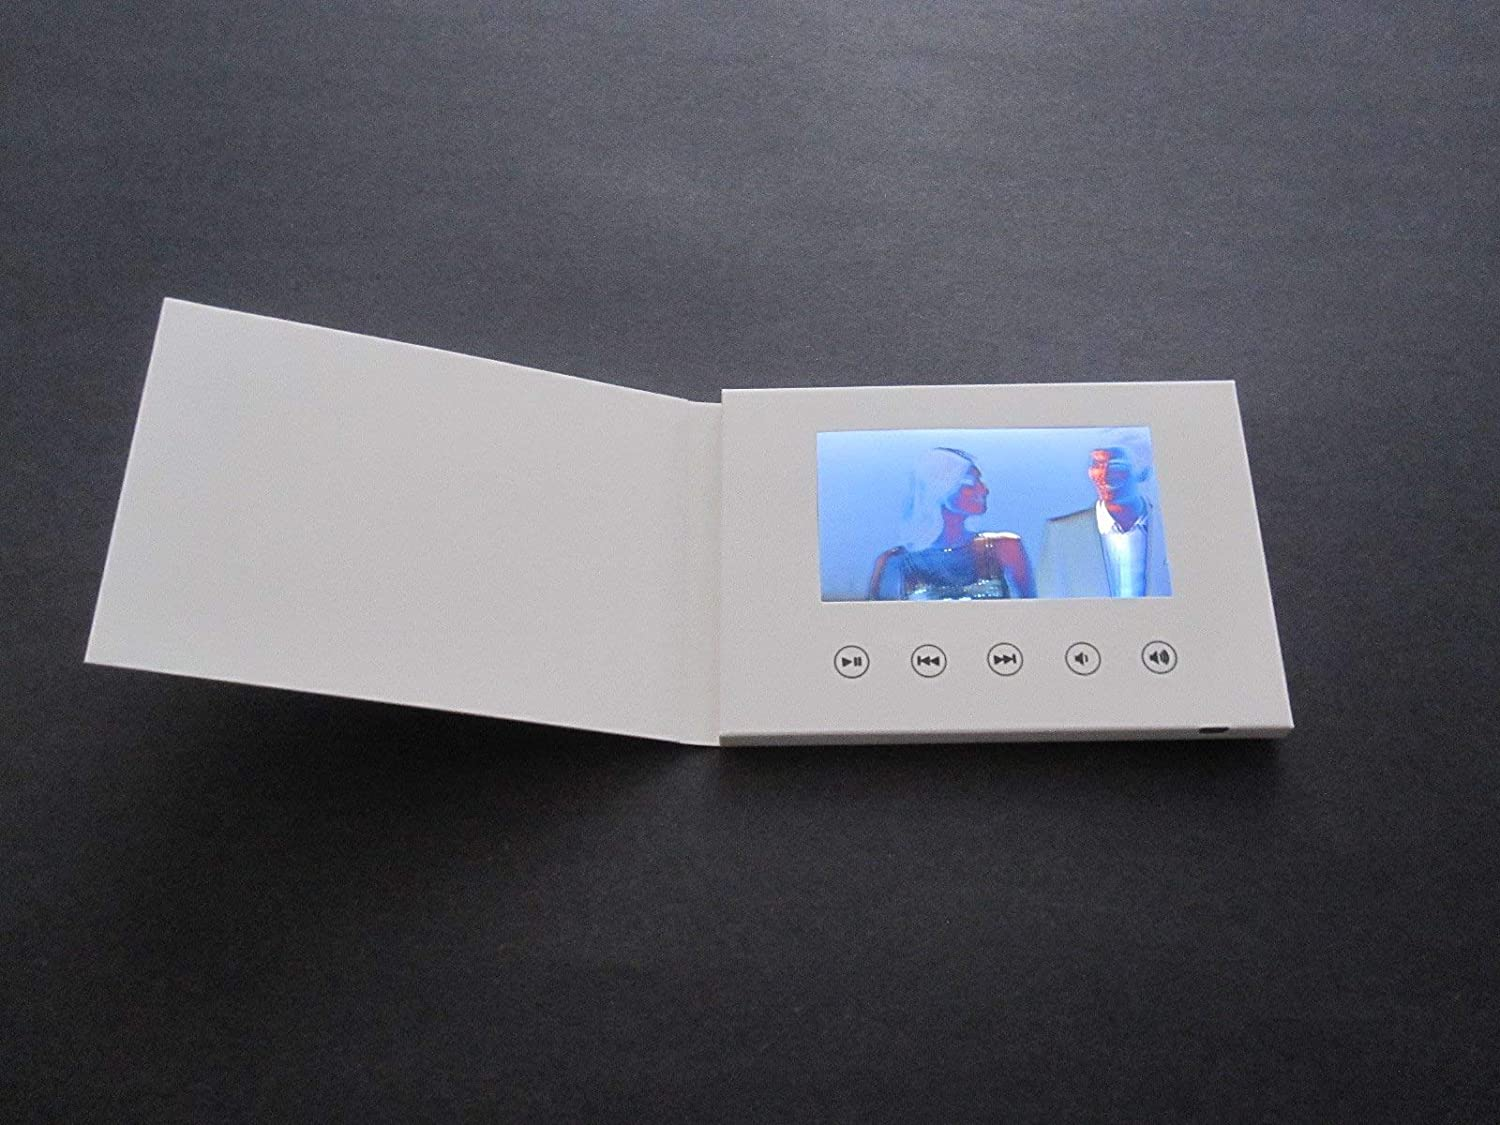 Video Ranking TOP4 invitation video greeting screen Credence pregn card